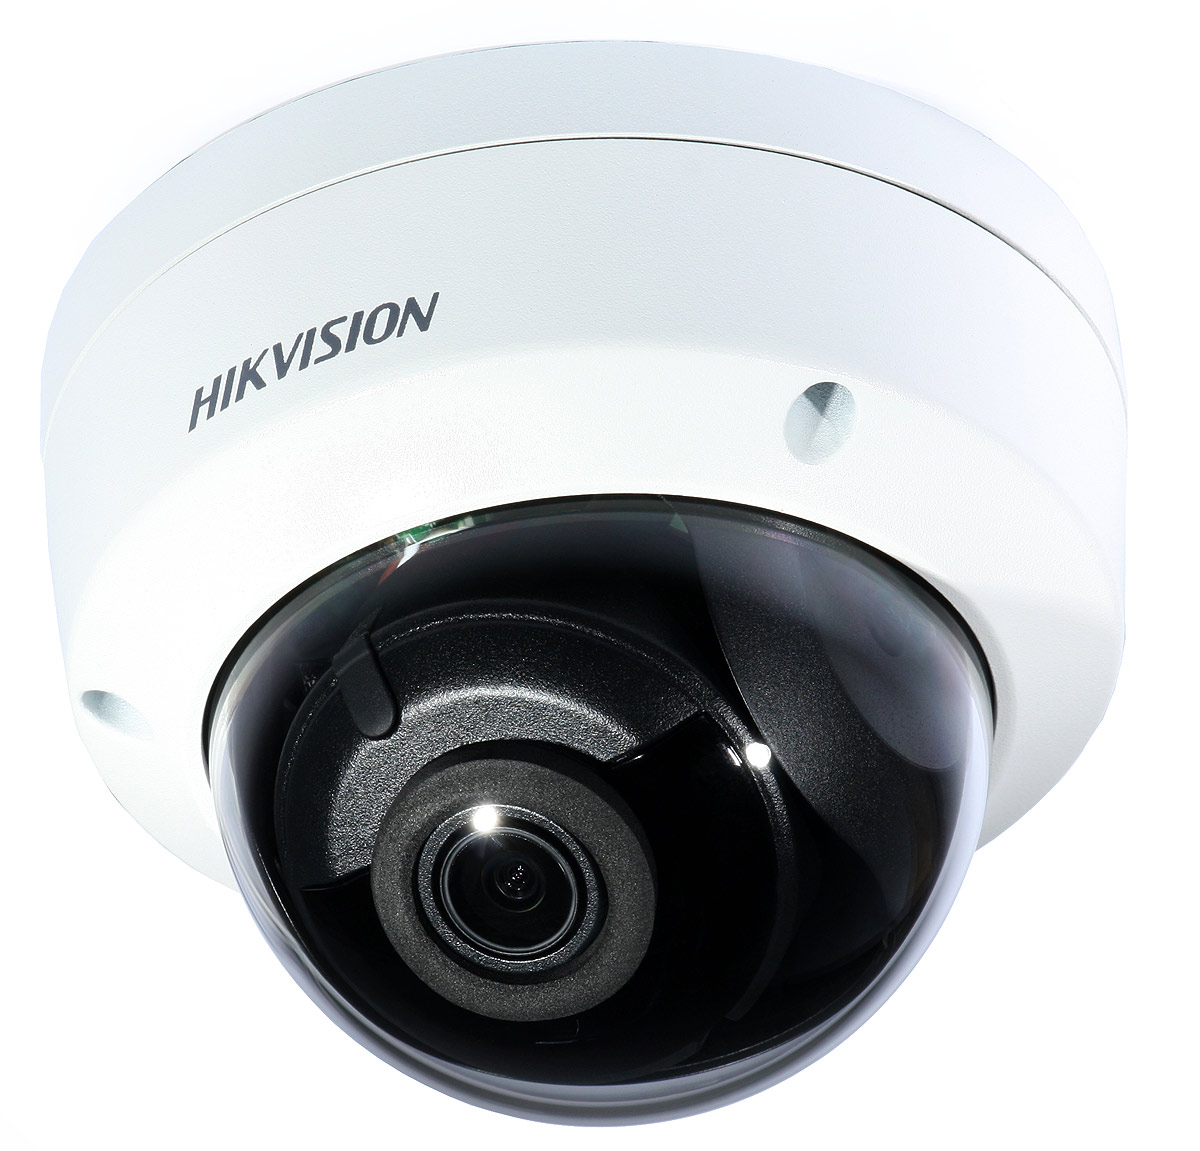 Ceiling IP Camera: Hikvision DS-2CD2123G0-I (2MP, 2 8mm, 0 028 lx